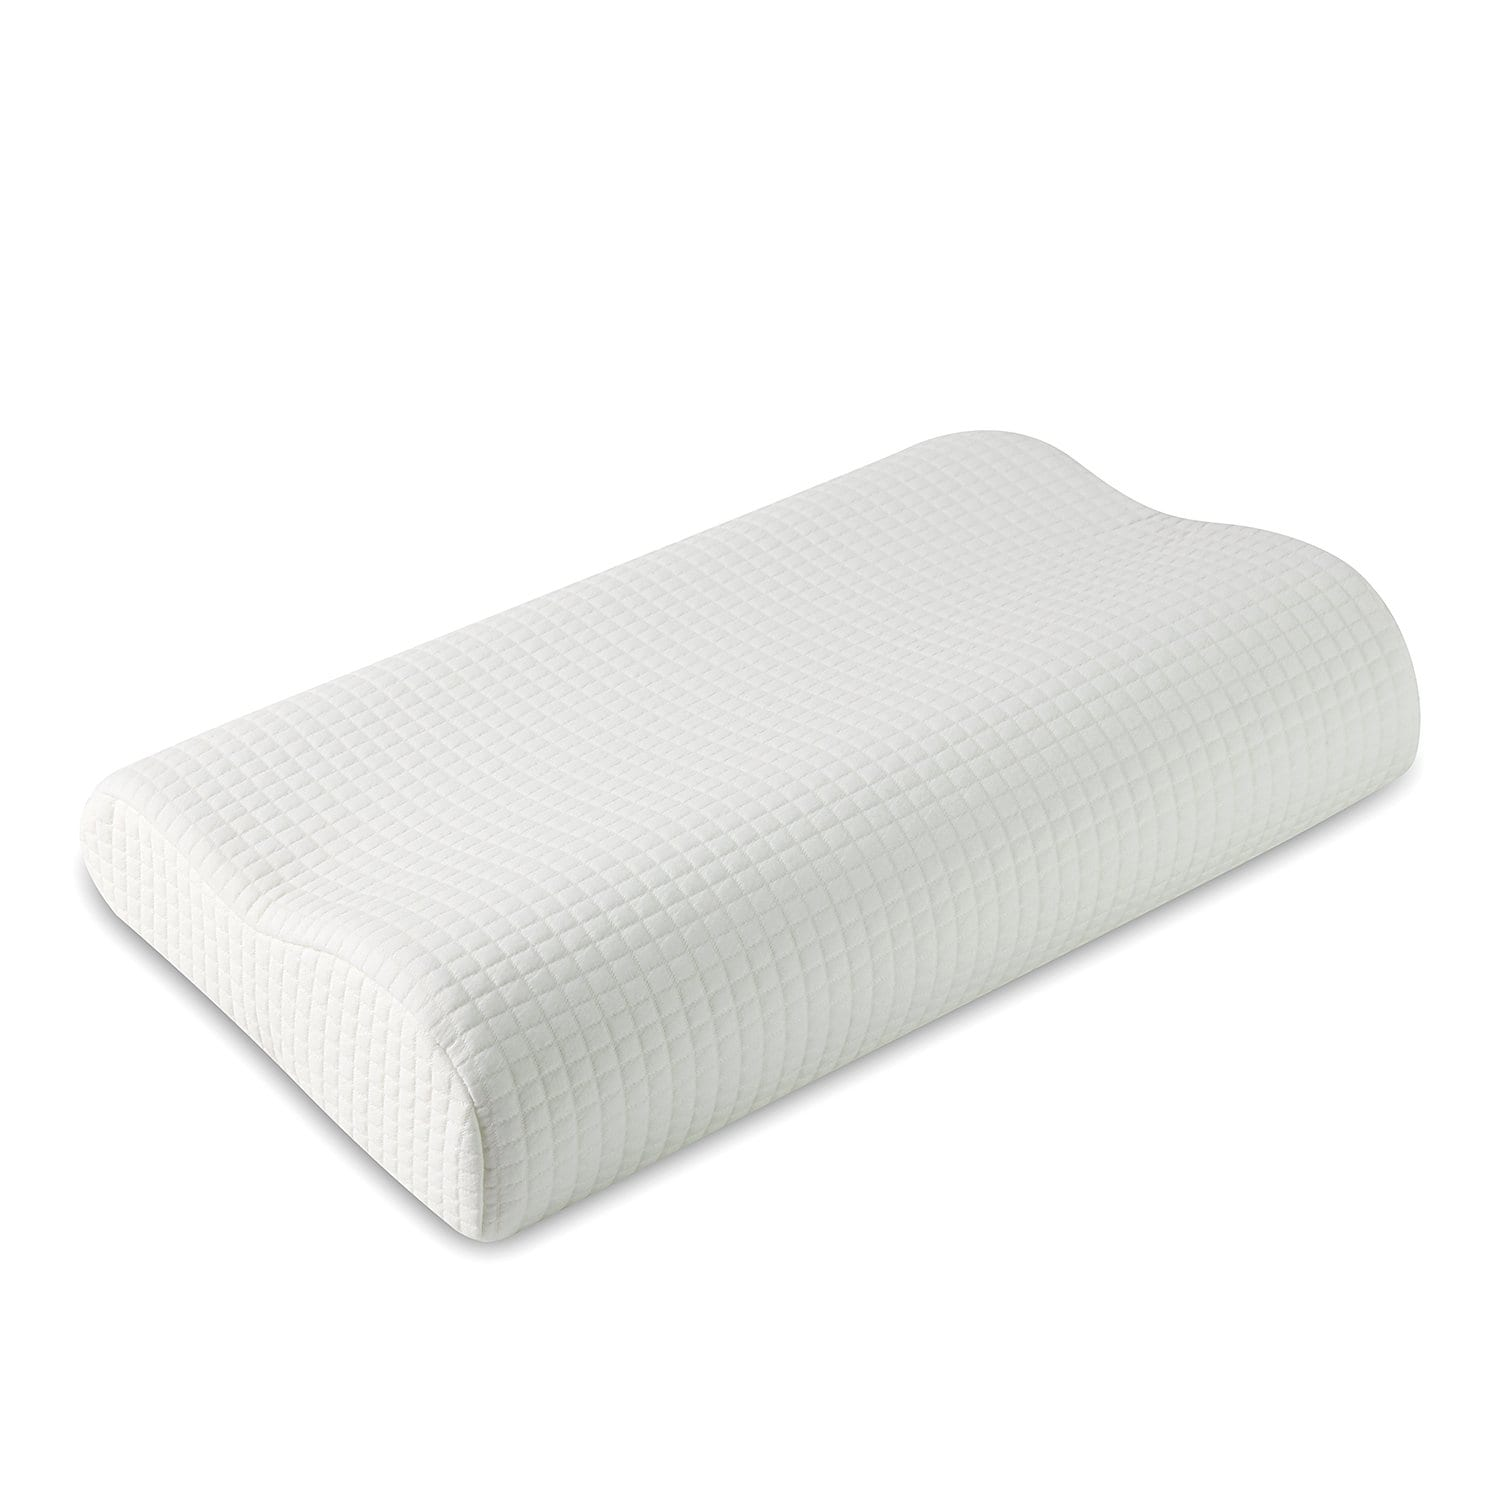 HOMGOOSE Best Contour Pillows Review by www.dailysleep.org